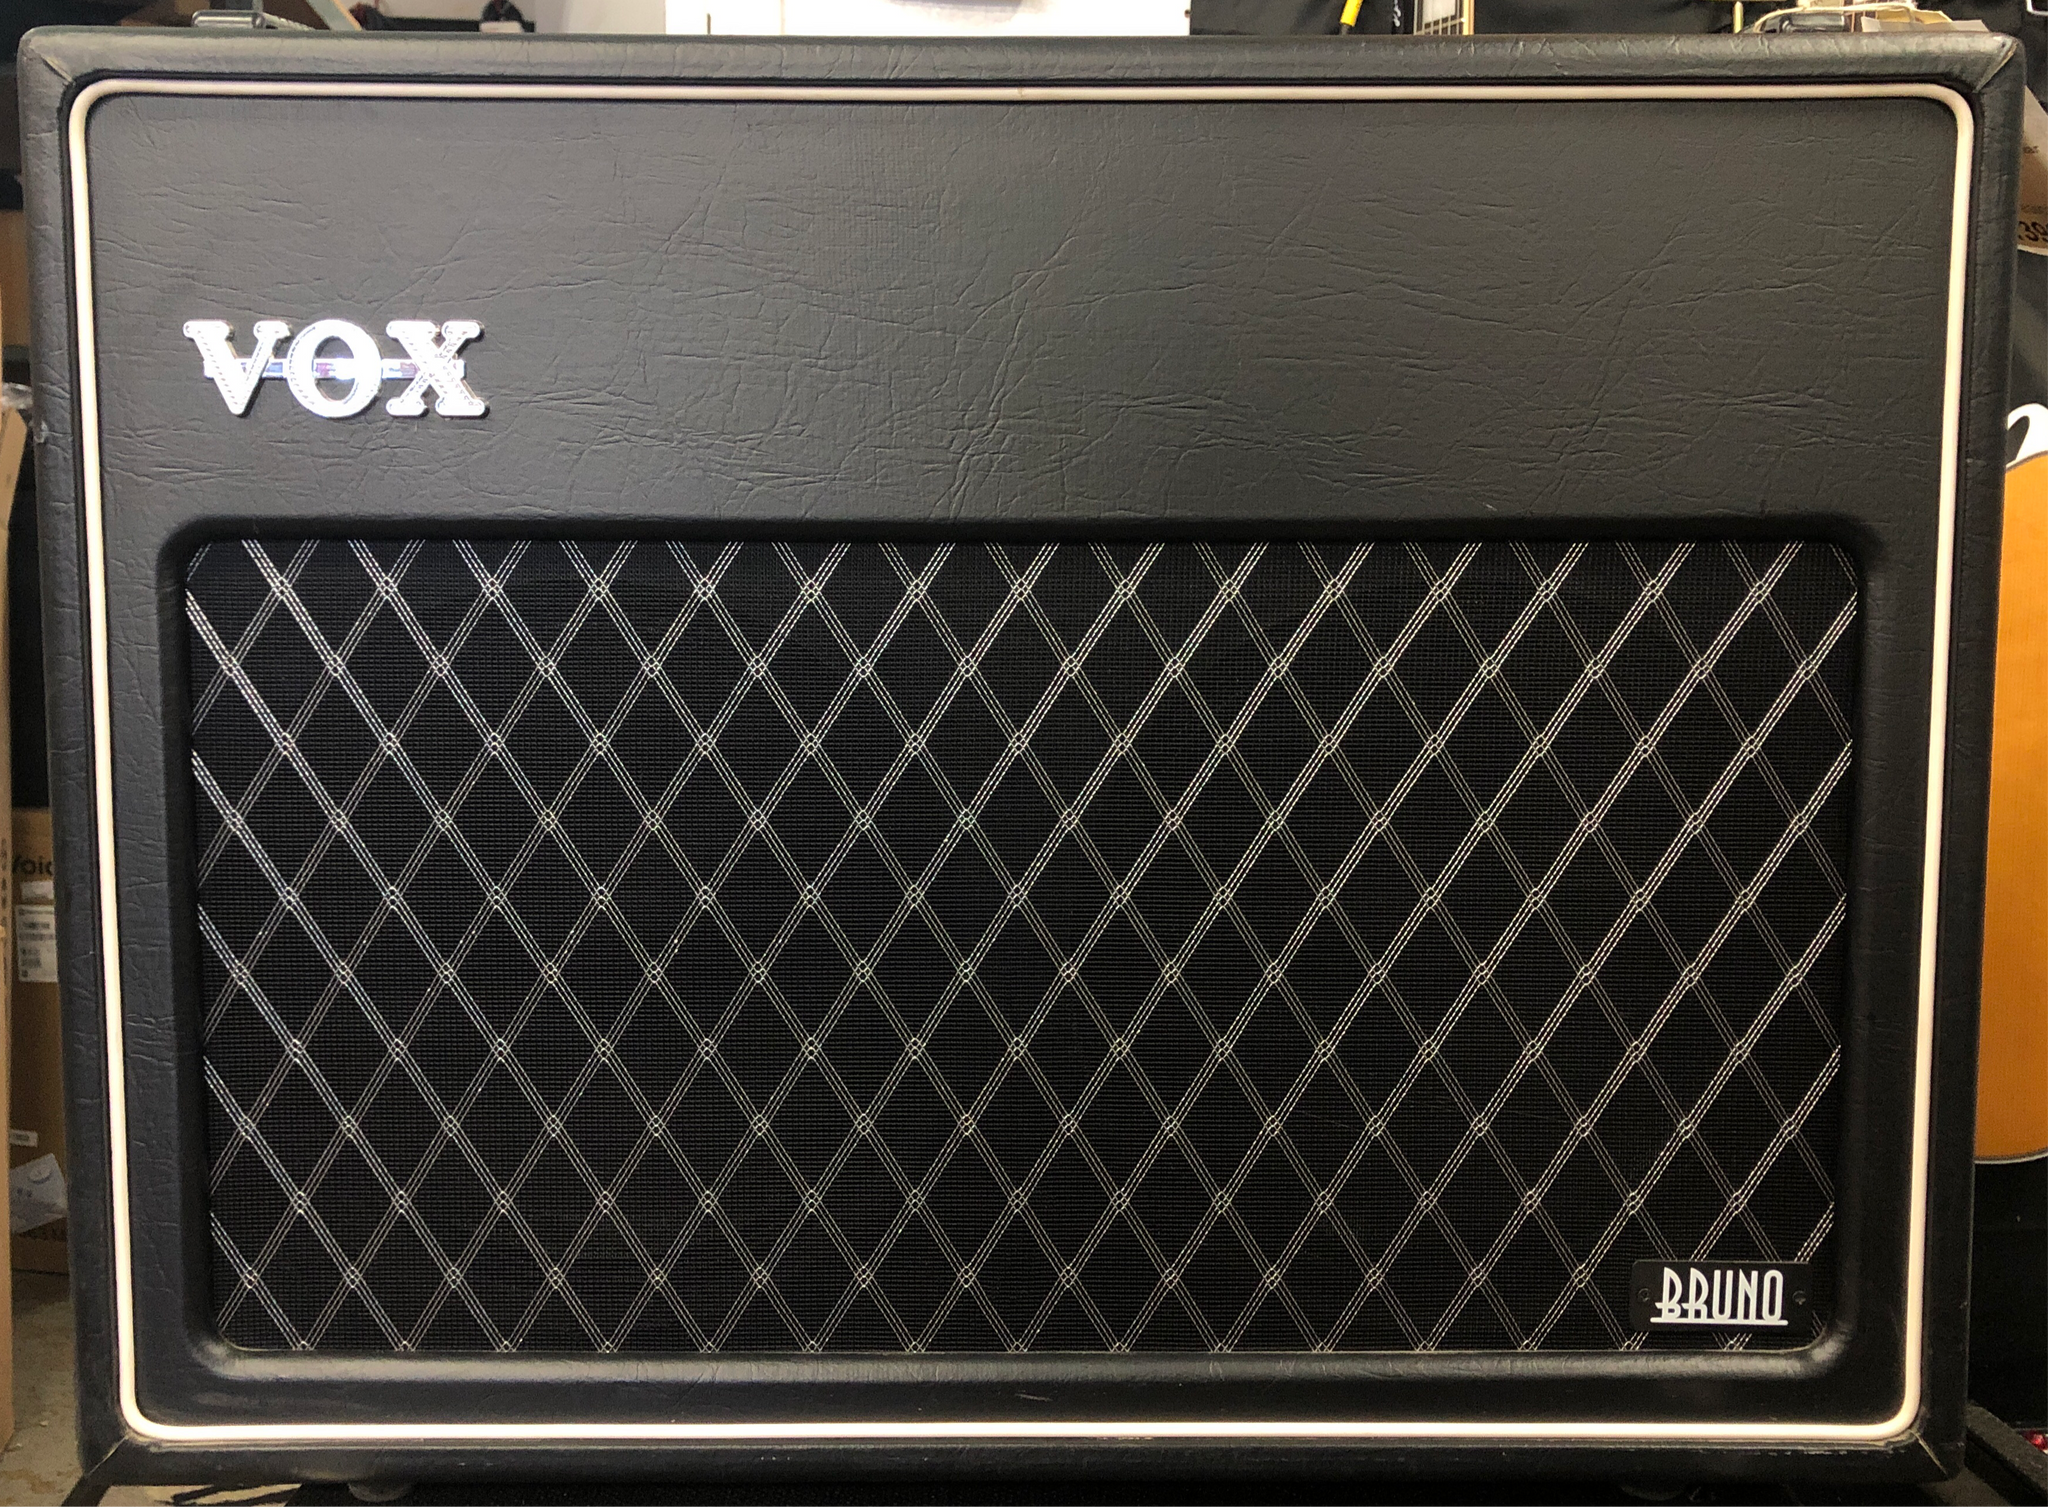 Vox Tony Bruno 2x12 TB35C2 Guitar Tube Amp (Floor Model)